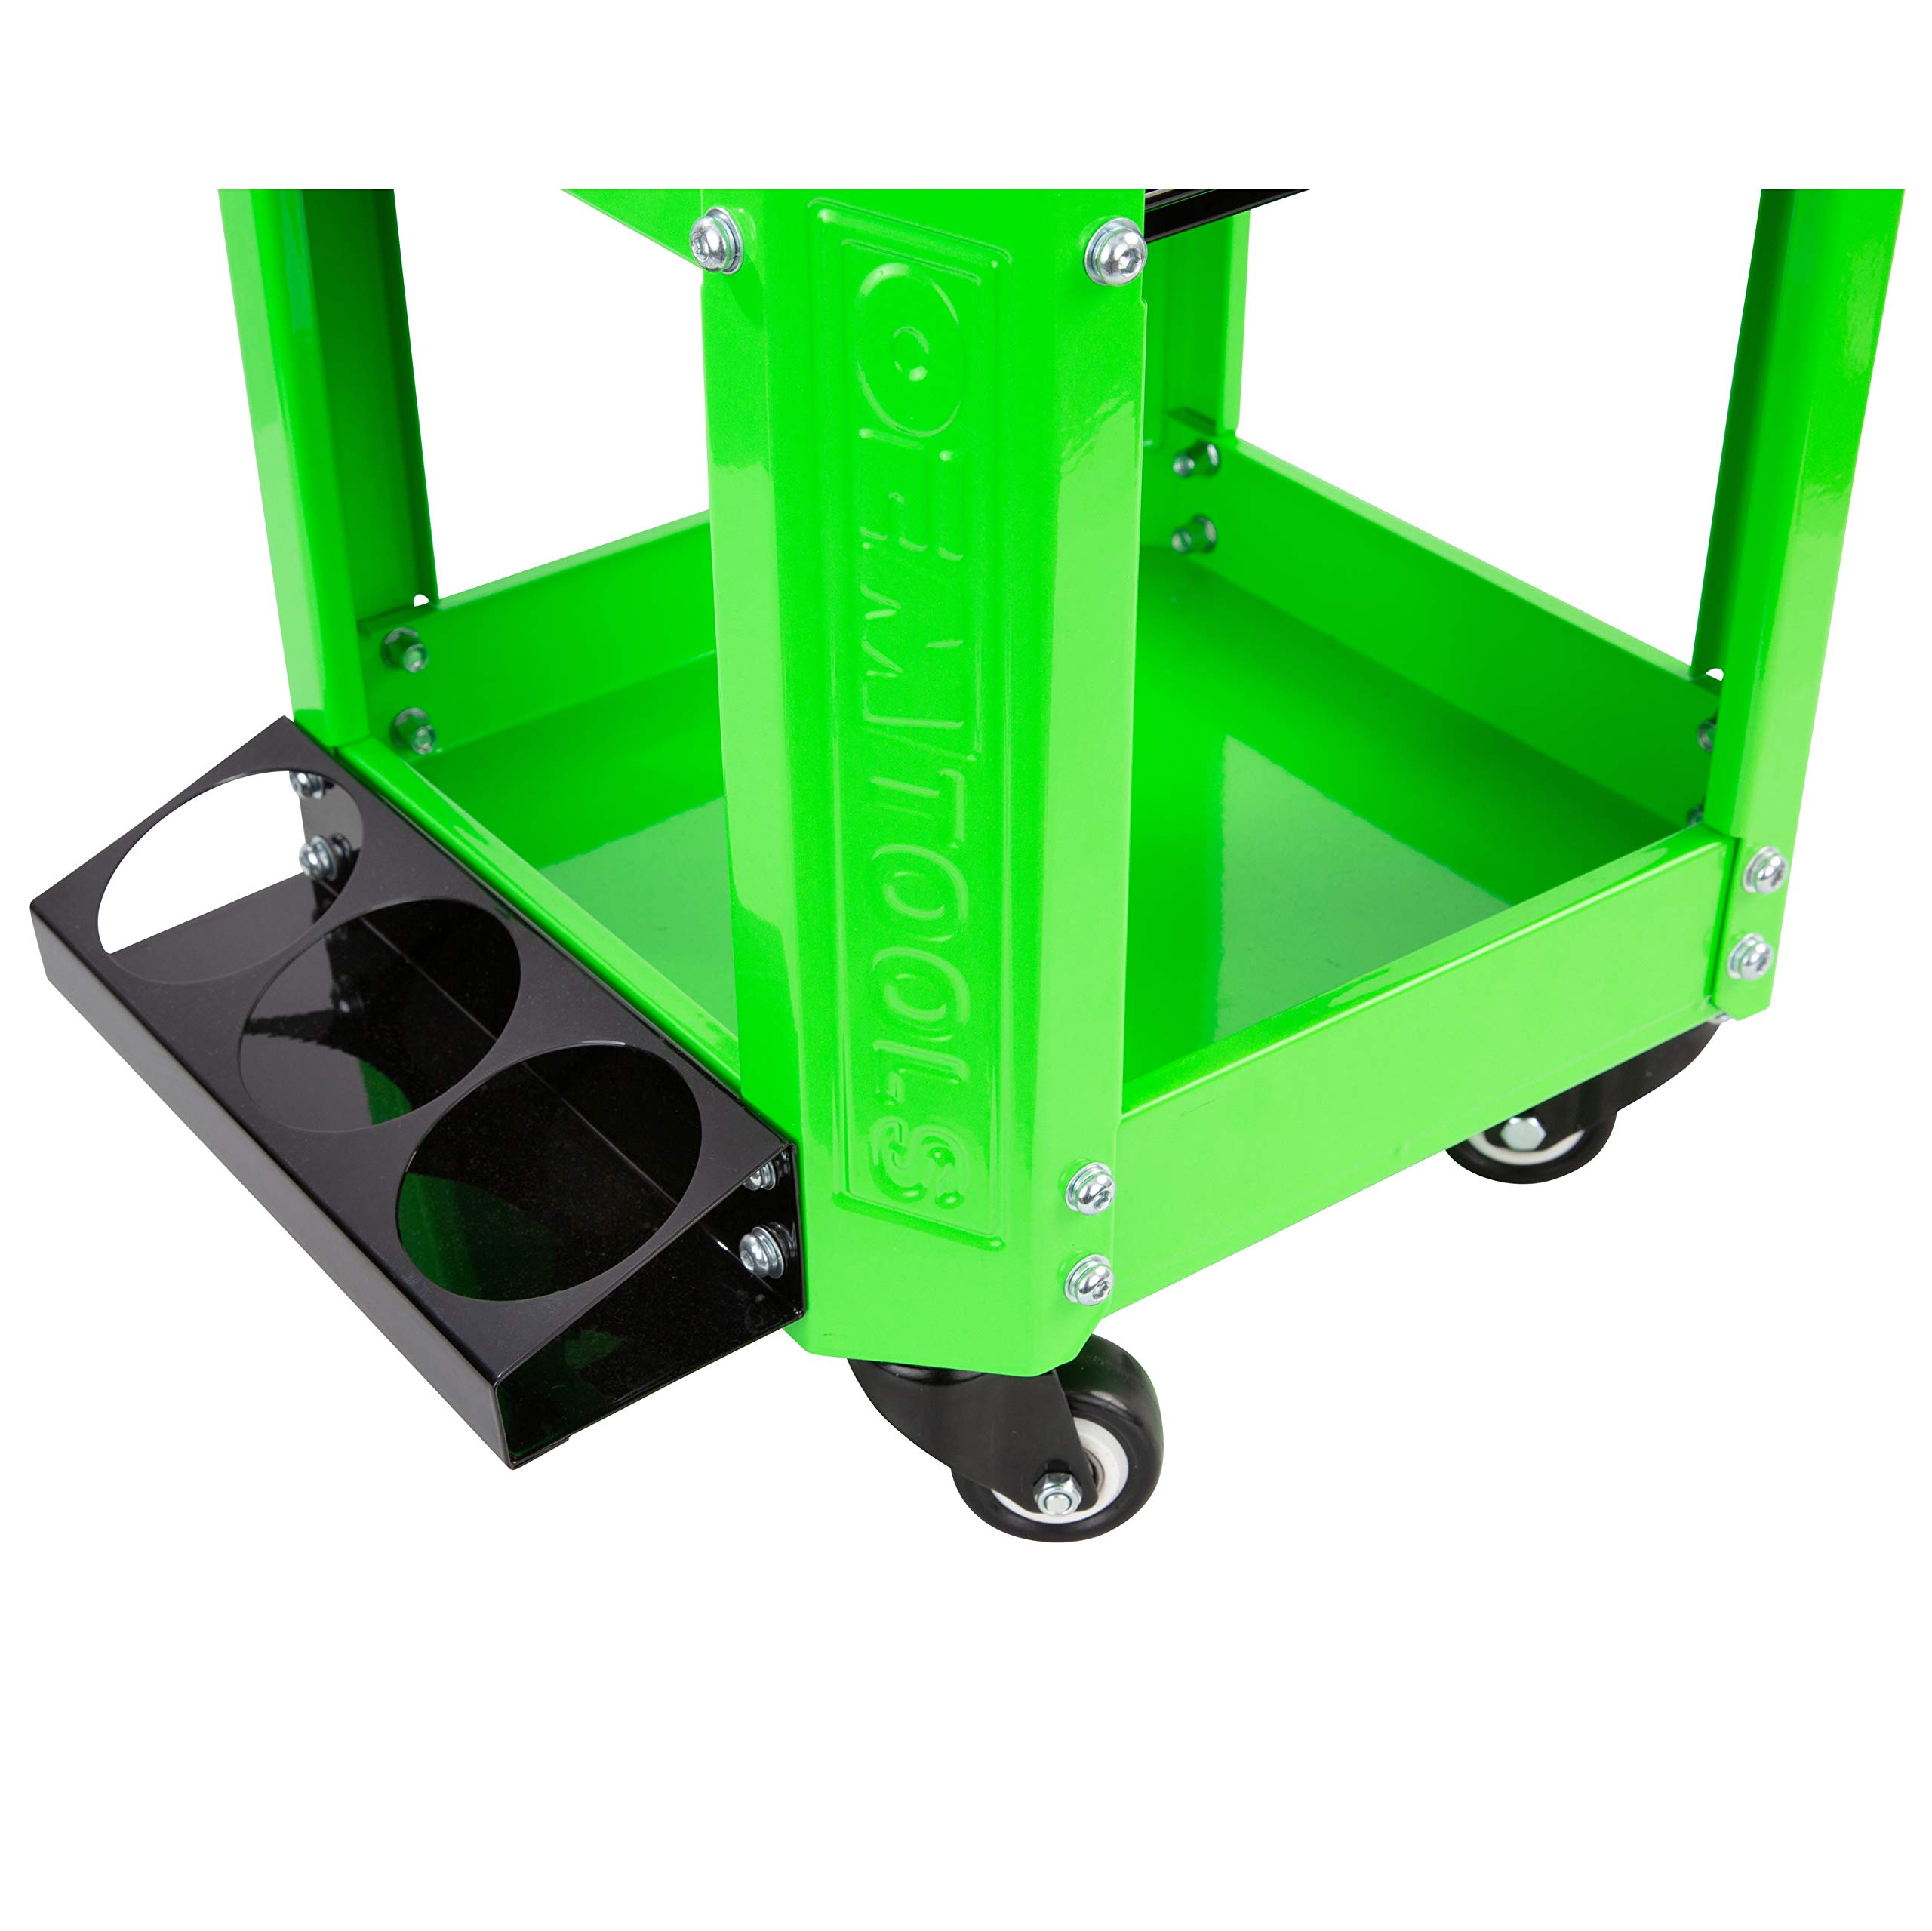 OEMTOOL 24993 Green Rolling Workshop Creeper Seat with 2 Tool Storage Drawers Under Seat Storage Can Holders by OEMTOOLS (Image #5)